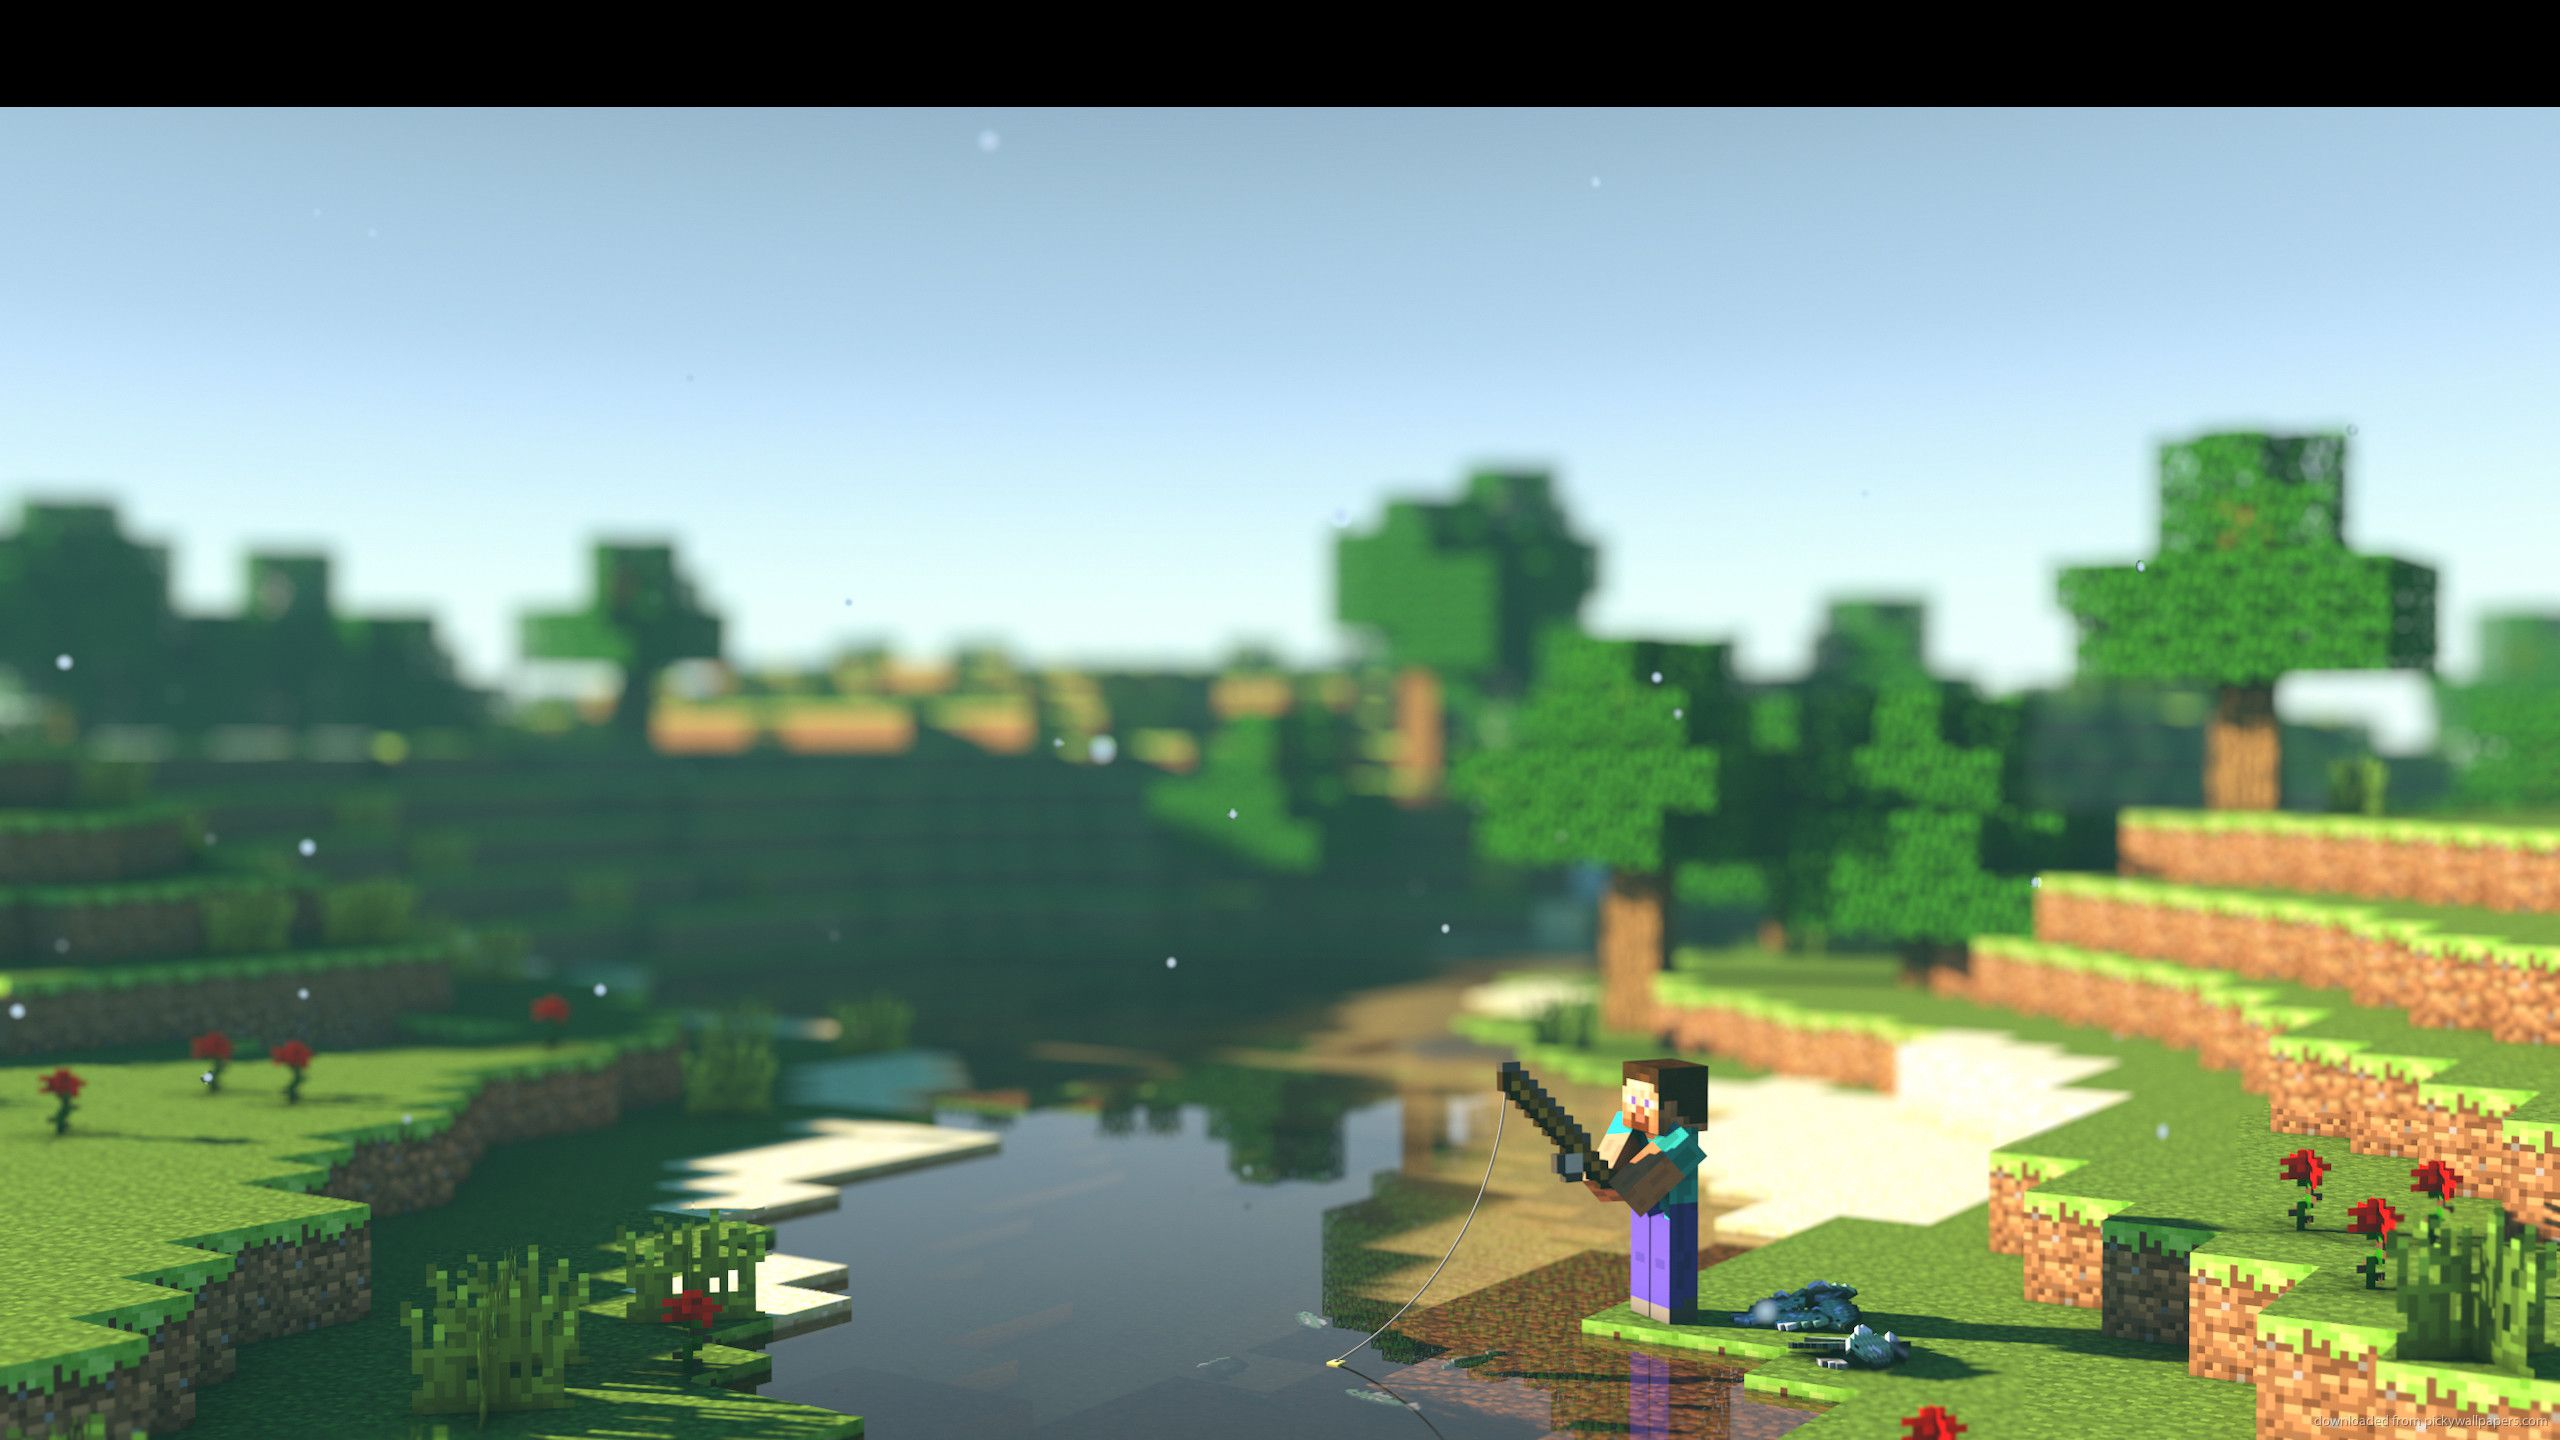 2560x1440 Minecraft Wallpapers Top Free 2560x1440 Minecraft Backgrounds Wallpaperaccess